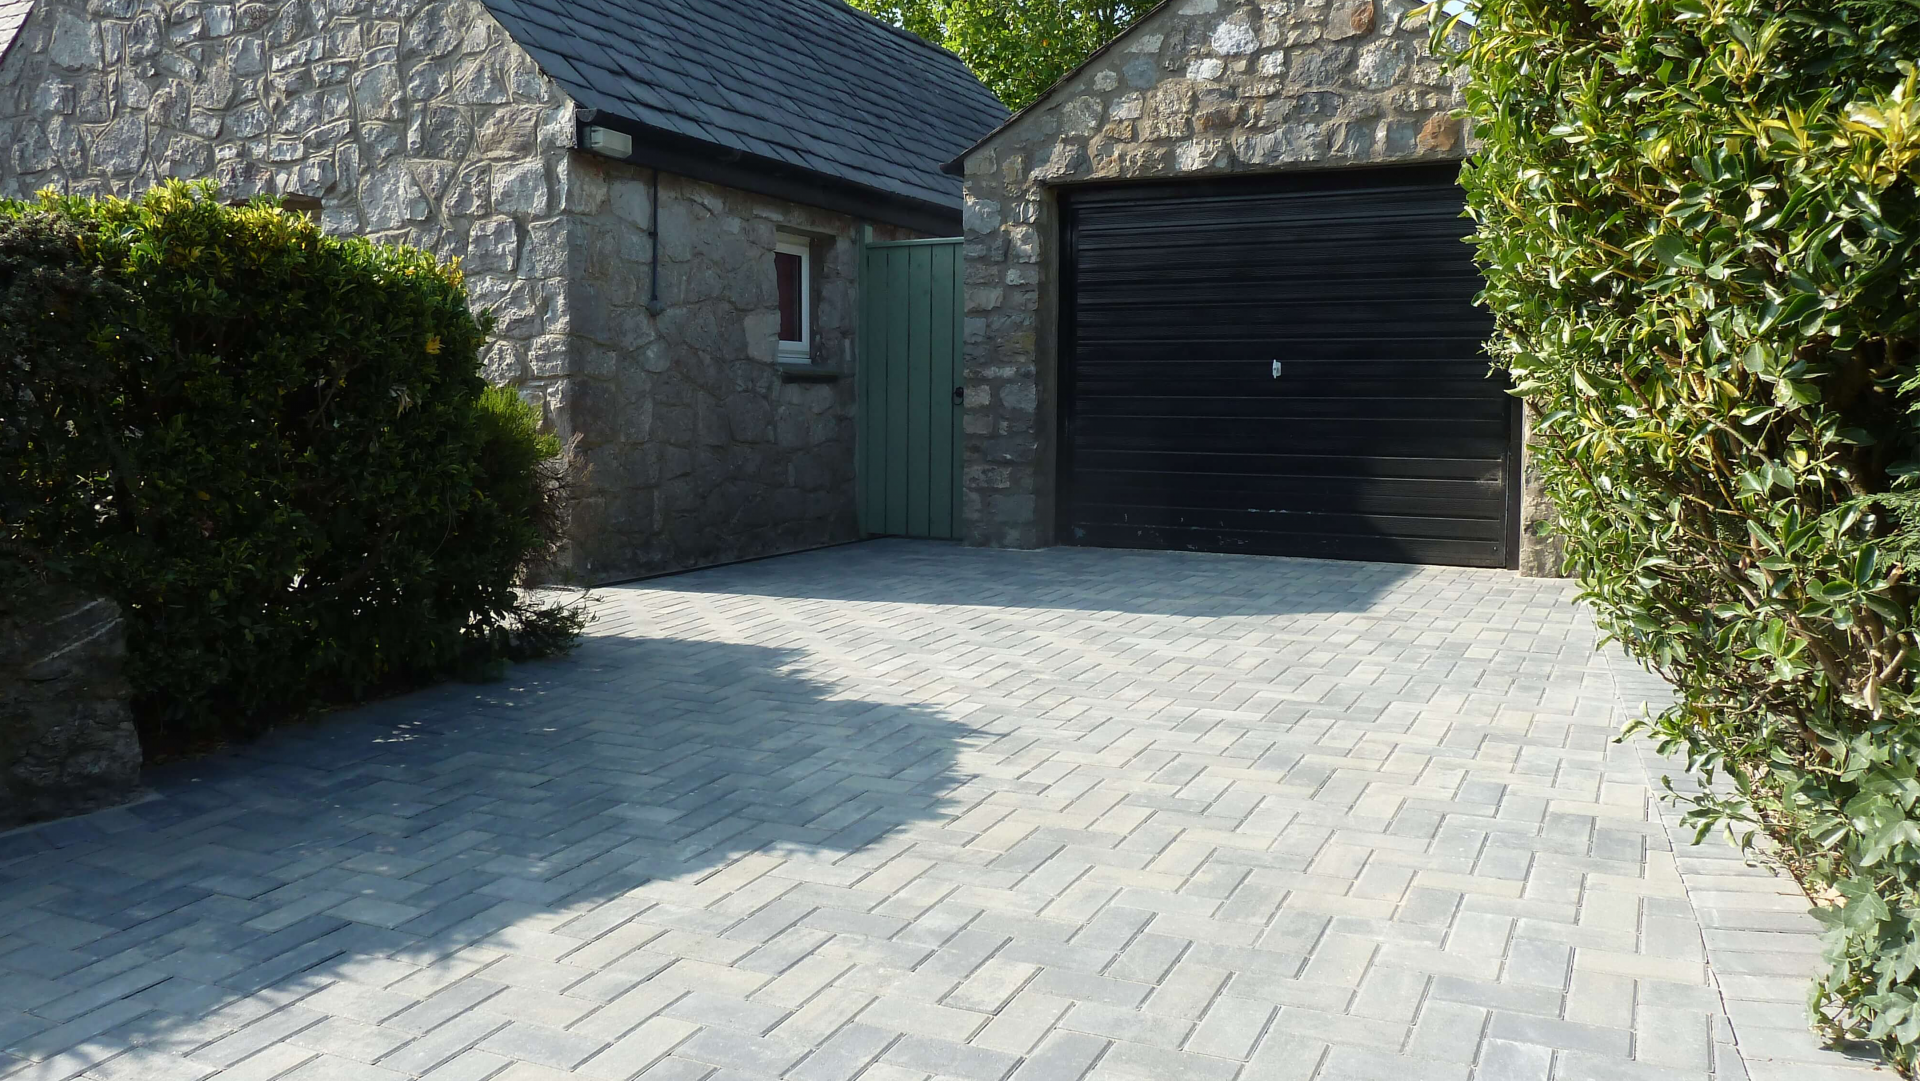 New driveway & Garden Paths - North Wales